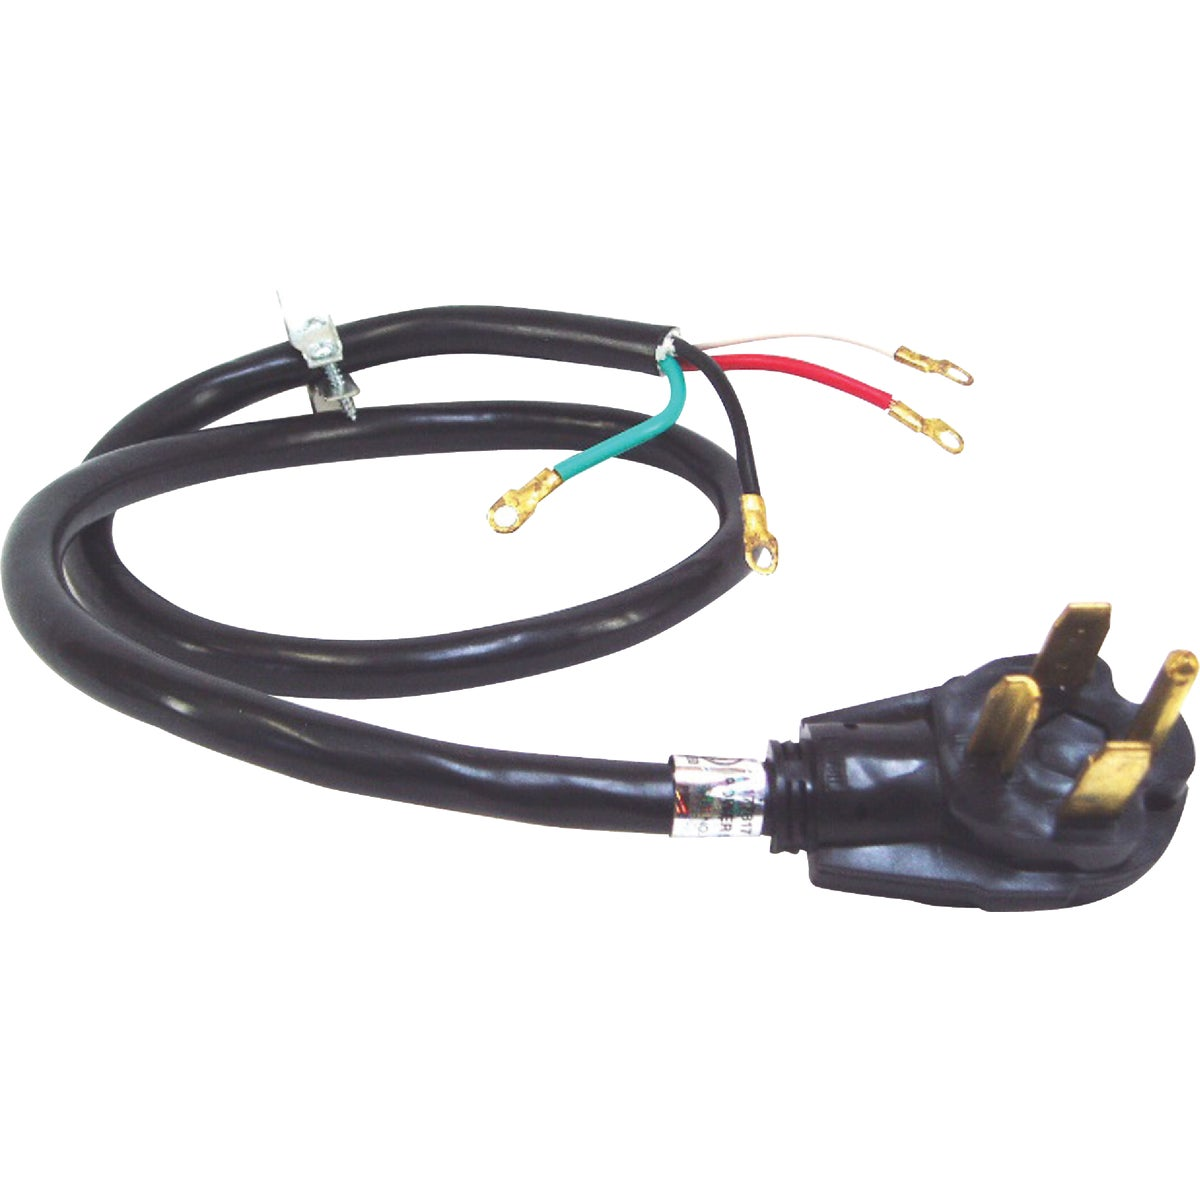 4' DRYER CORD - E-066B by U S Hardware